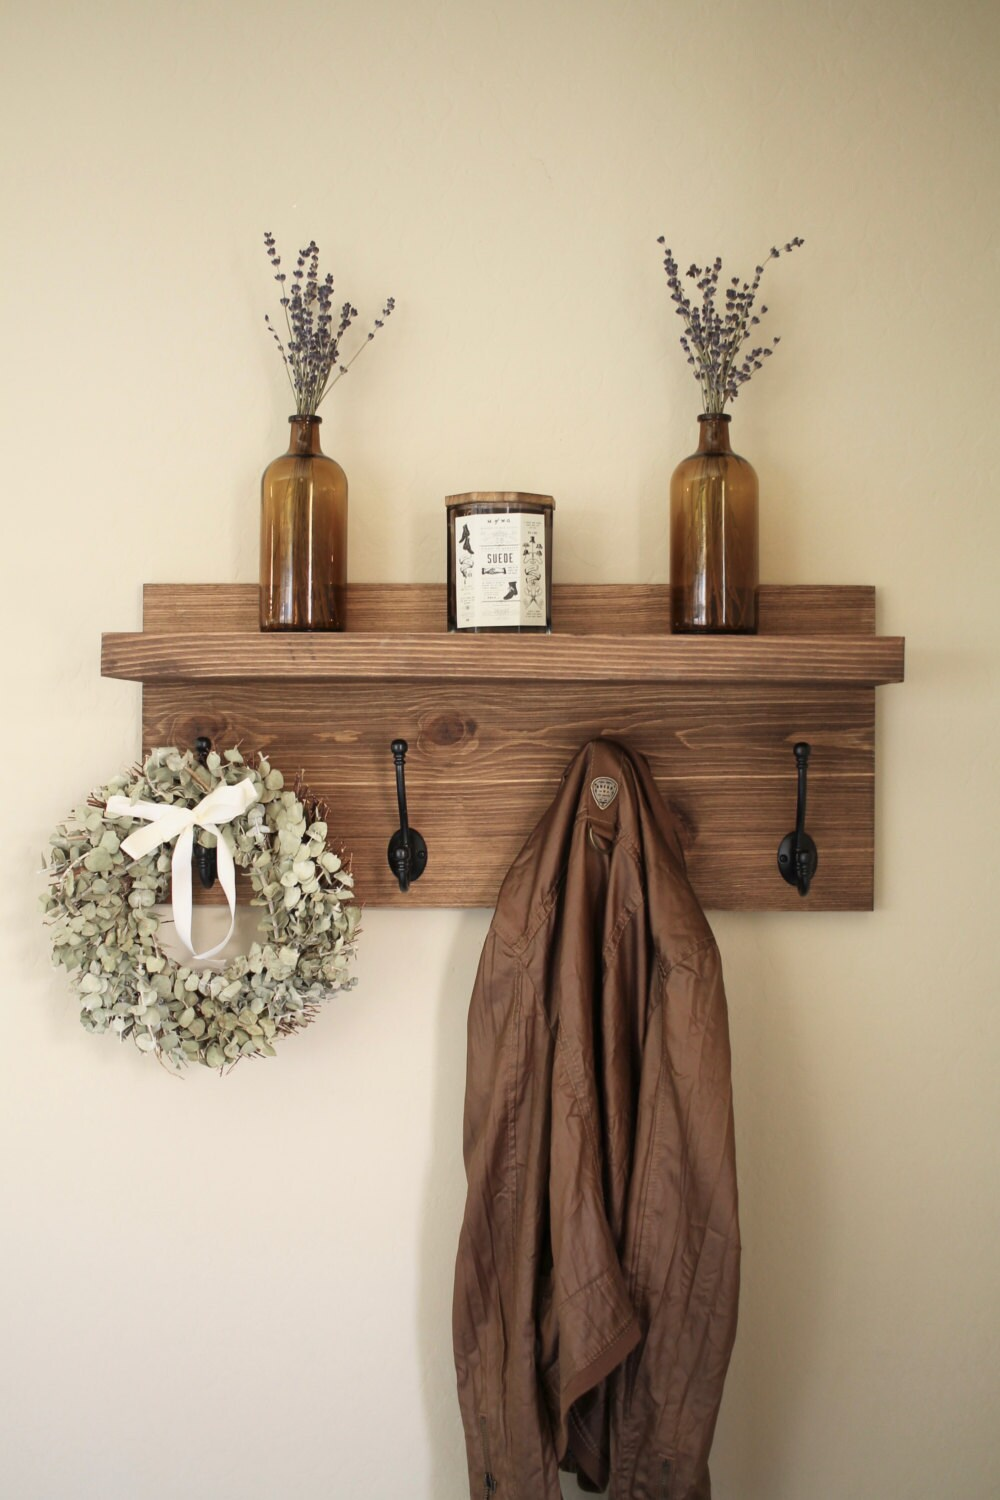 Rustic Wooden Entryway Coat Rack Rustic Wooden Shelf Entryway Rack Coat Rack Rustic Home